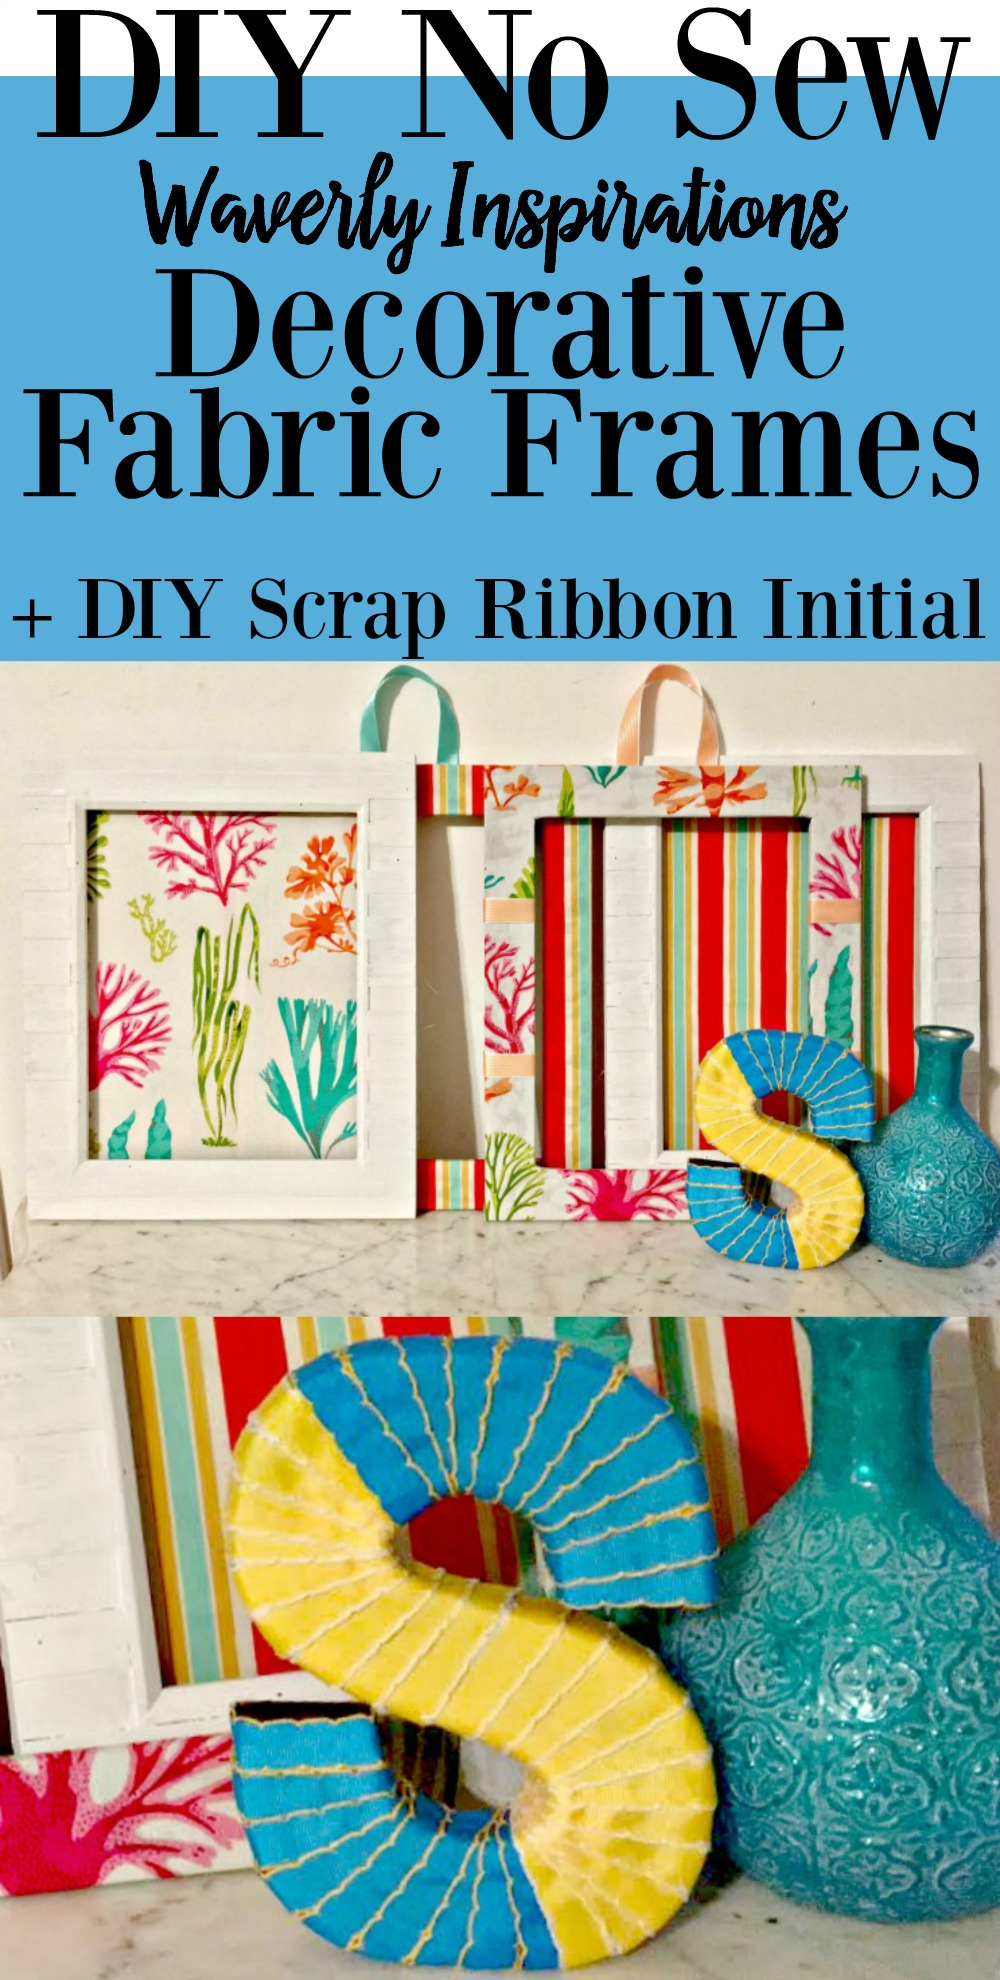 DIY Decorative Fabric Frames